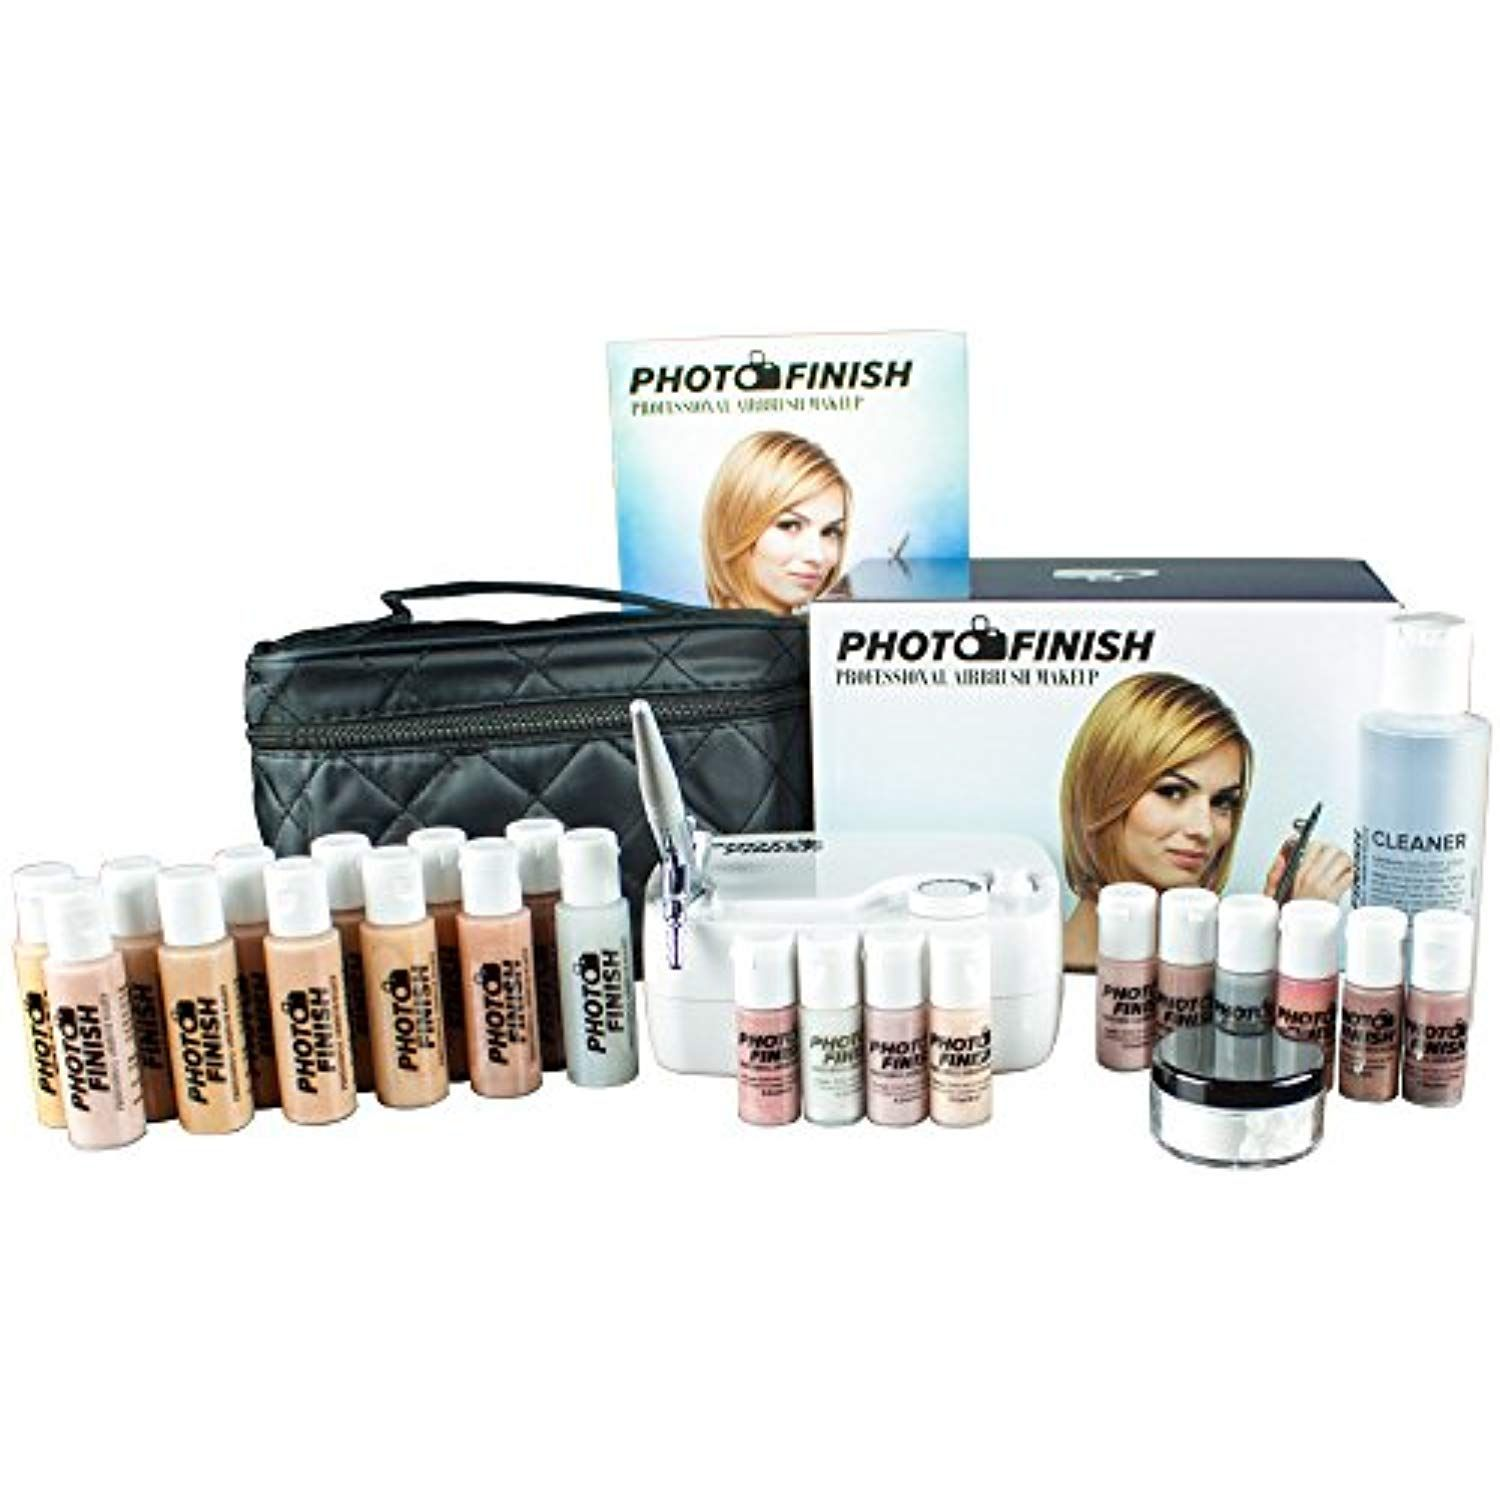 Photo Finish Professional Airbrush Cosmetic Makeup Deluxe